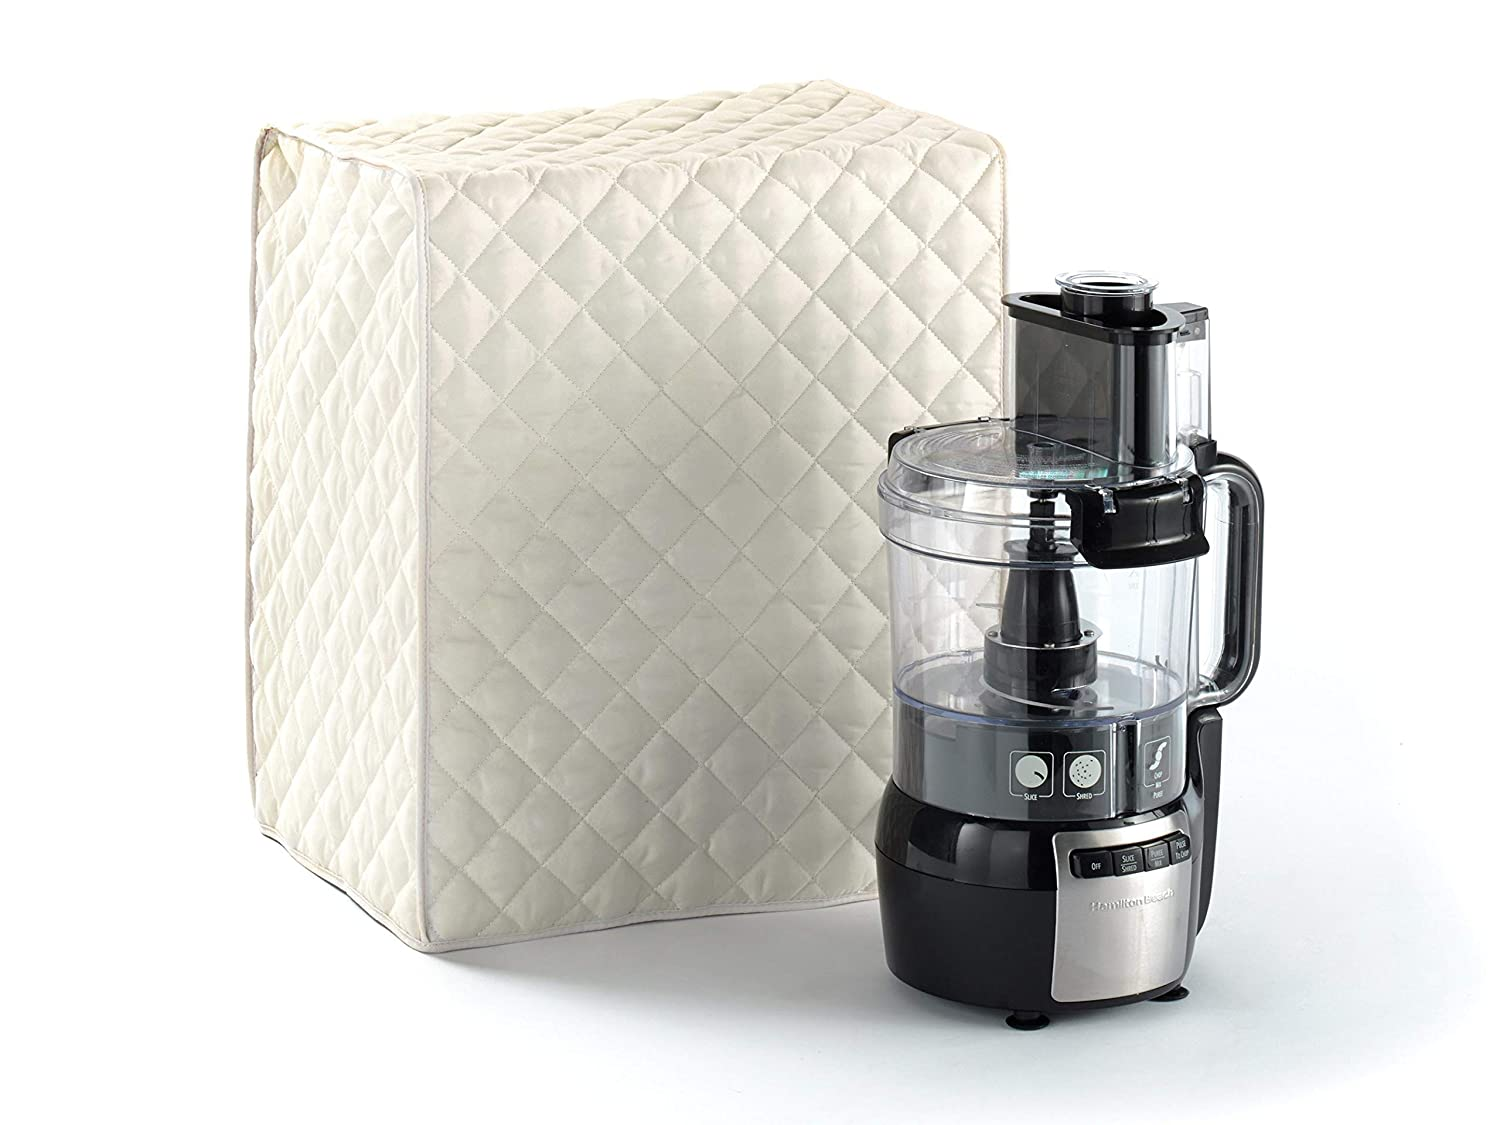 Covermates Food Processor Cover 15W x 11D x 18H Diamond Collection 2 YR Warranty Year Around Protection – Cream